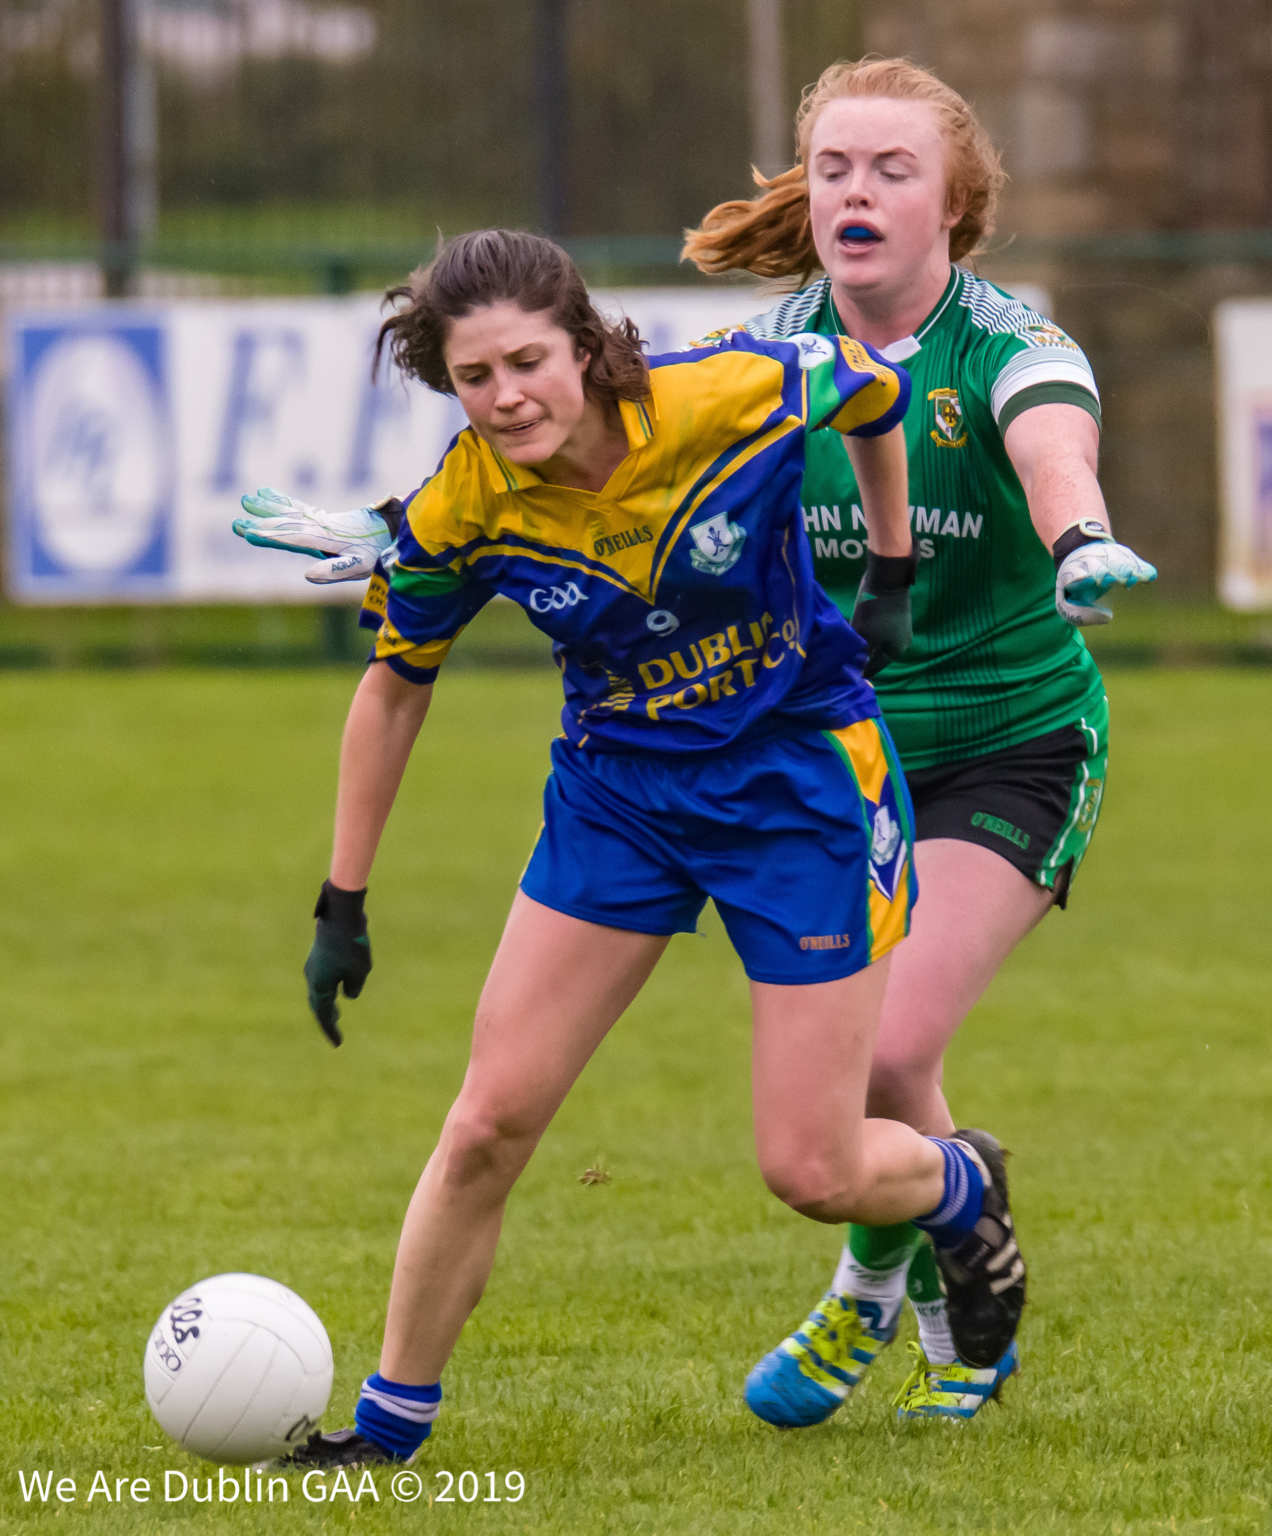 A Clanna Gael Fontenoy and Donaghmore Ashbourne player battle for the ball during the Leinster Ladies Football club championship quarter final